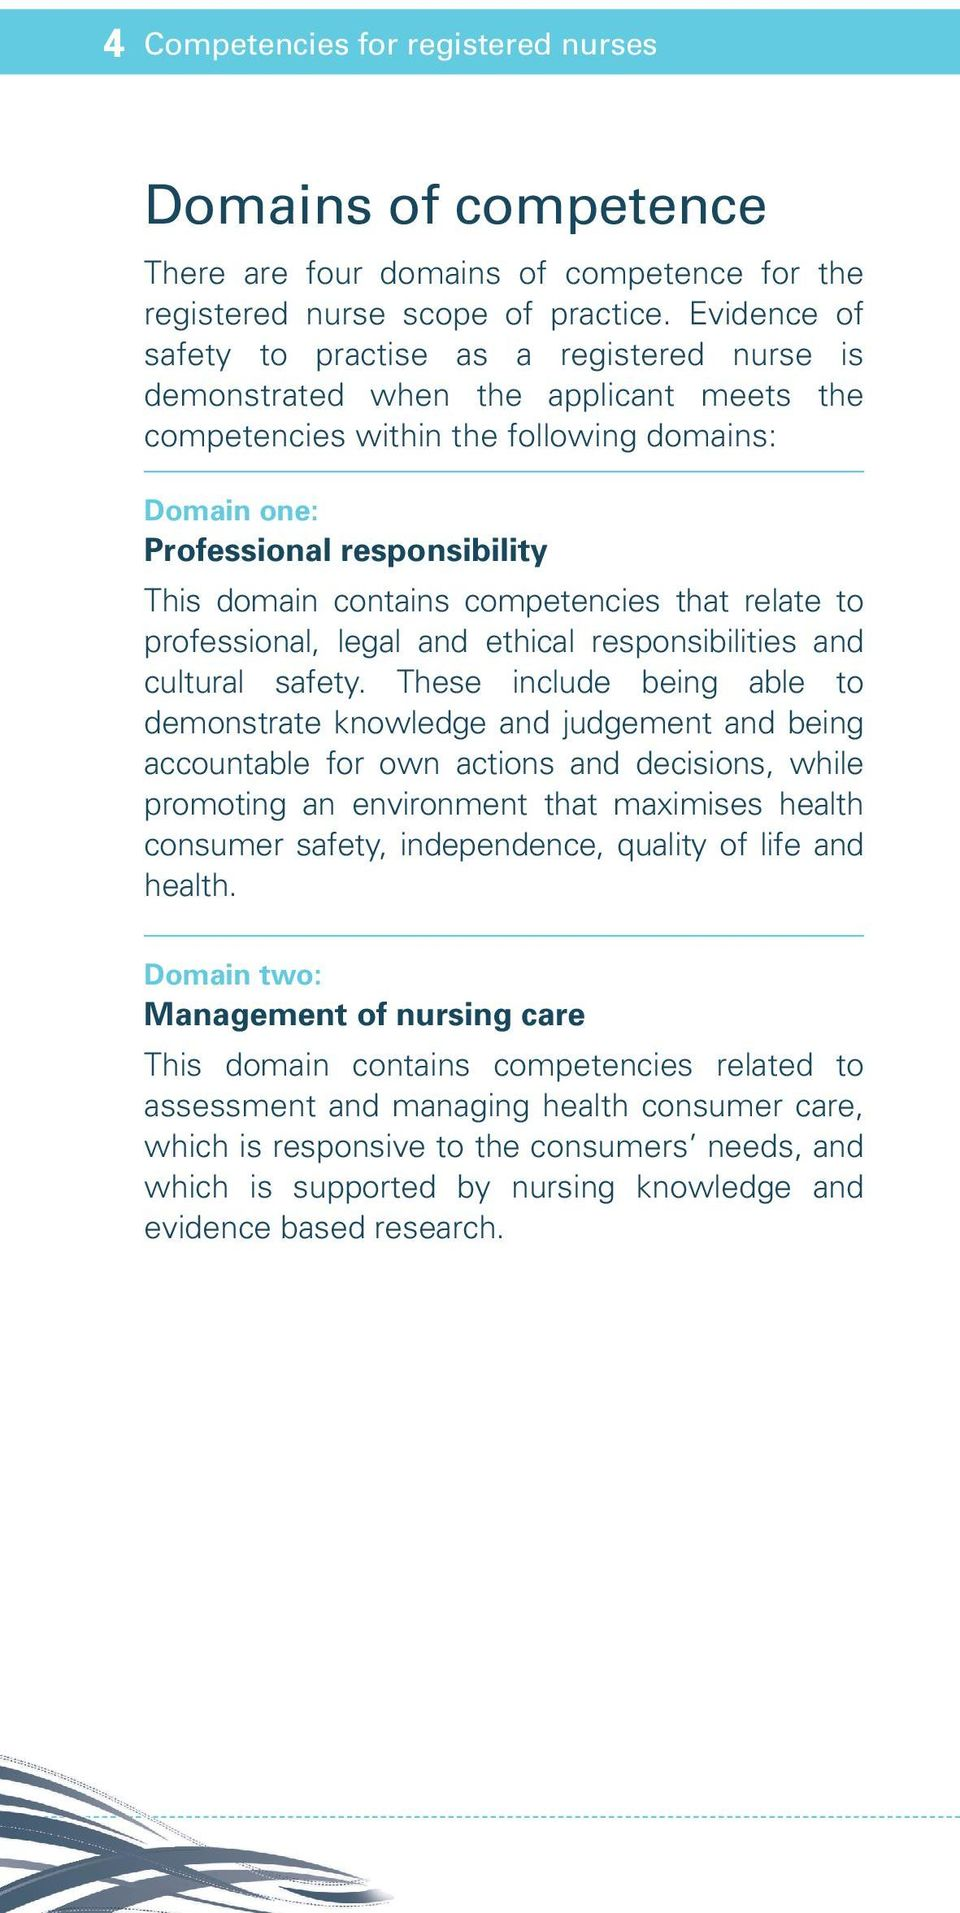 contains competencies that relate to professional, legal and ethical responsibilities and cultural safety.